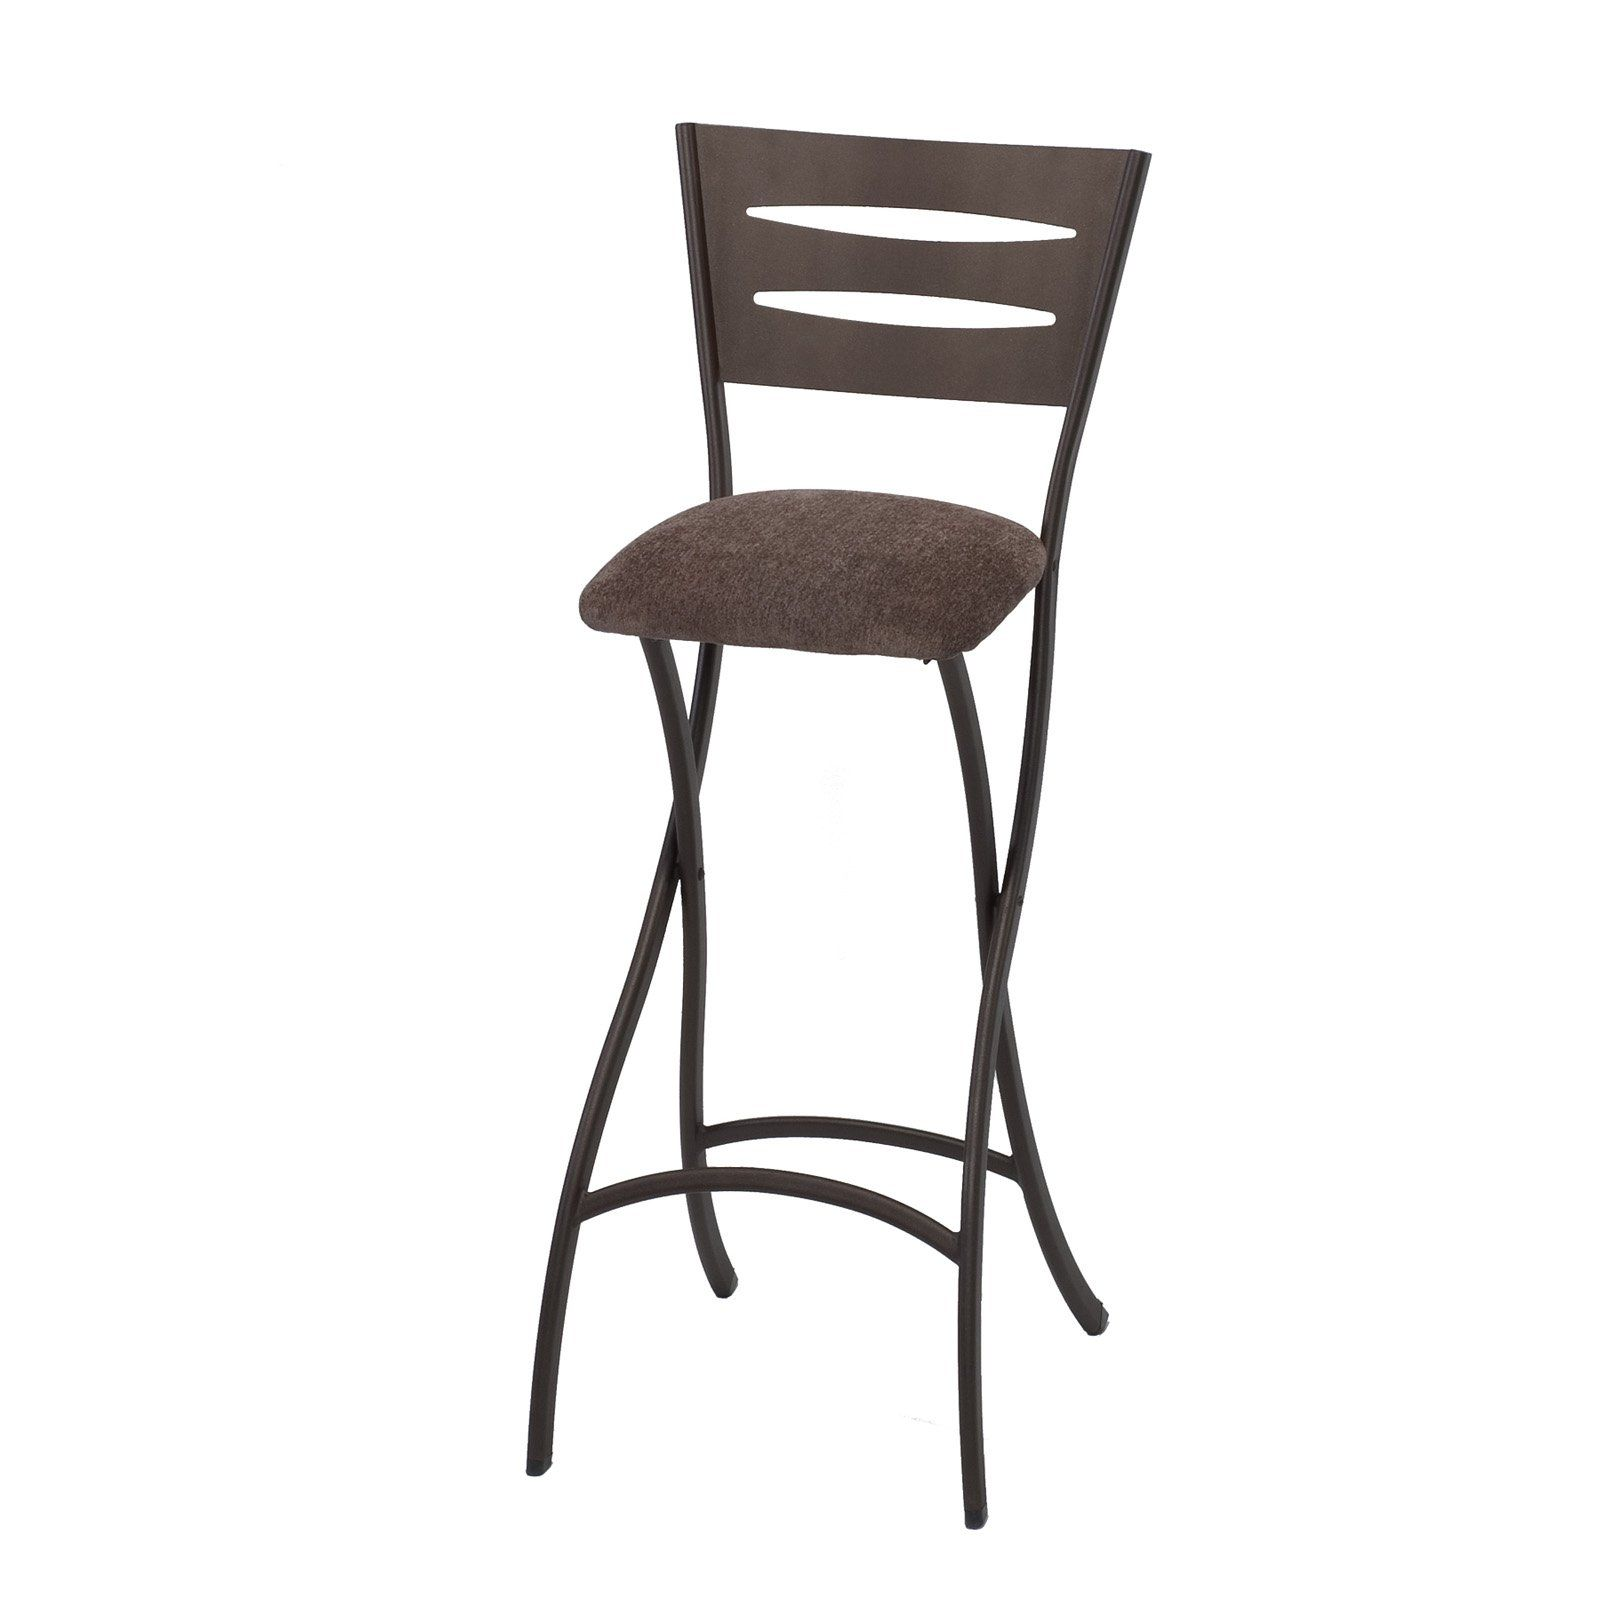 chairs hover stool to ikea pub zoom me with best folding stools and table most bar splendiferous counter industrial walmart breakfast costco canada small backs near foldable